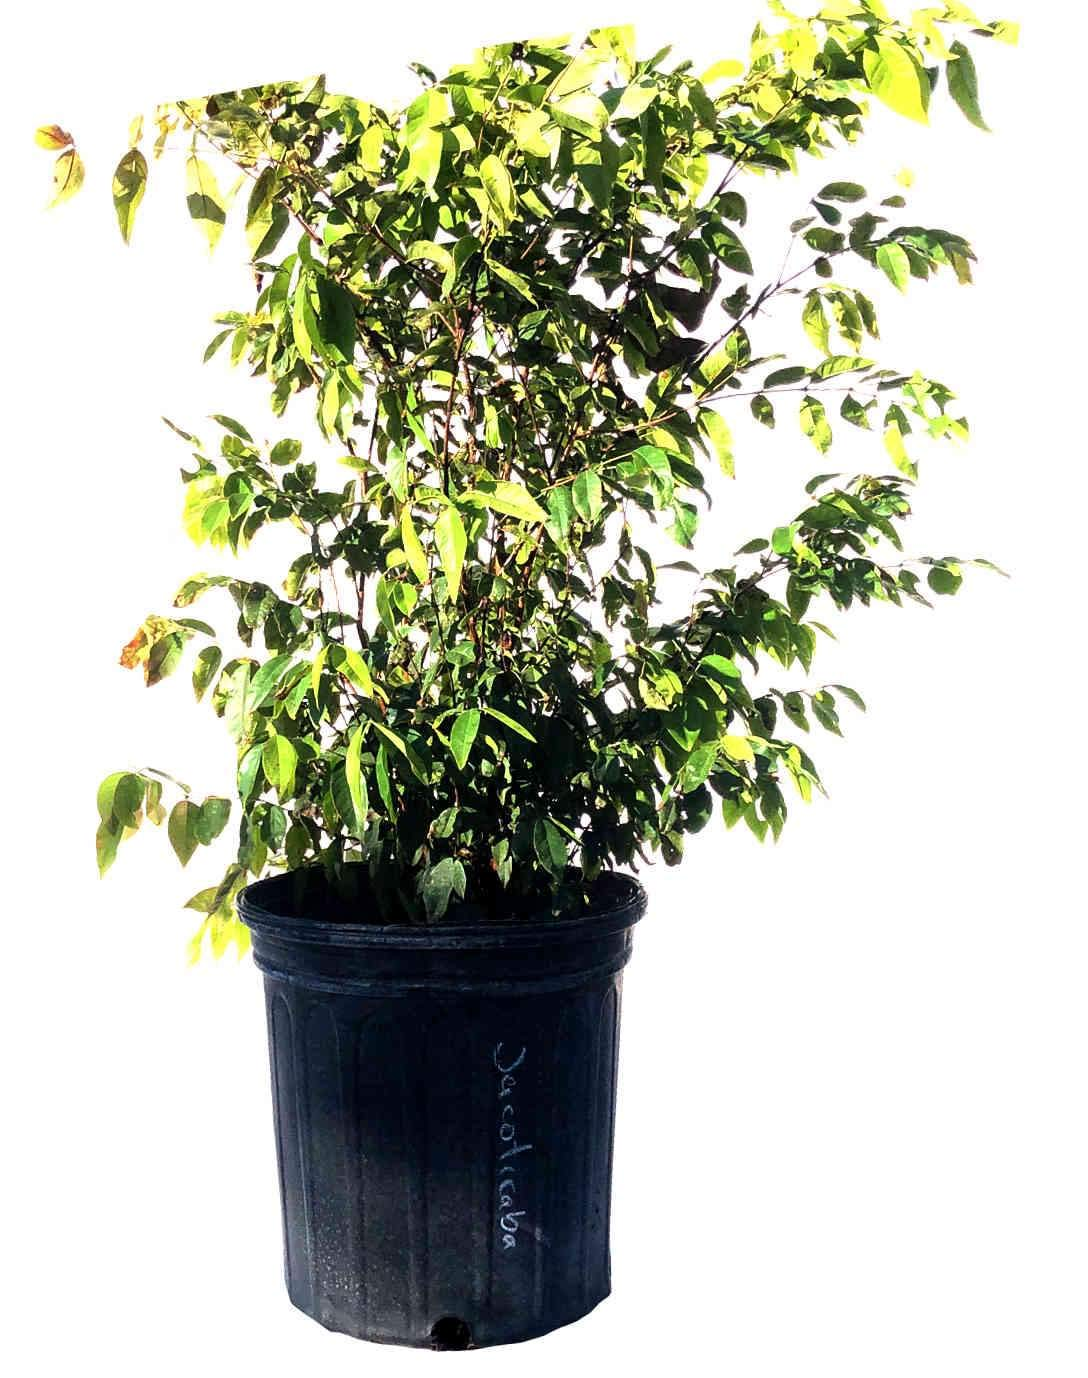 Jaboticaba Tree, 2 Feet Tall, 3-gal Container from Florida by Akashic Herb Co. Inc. (Image #1)